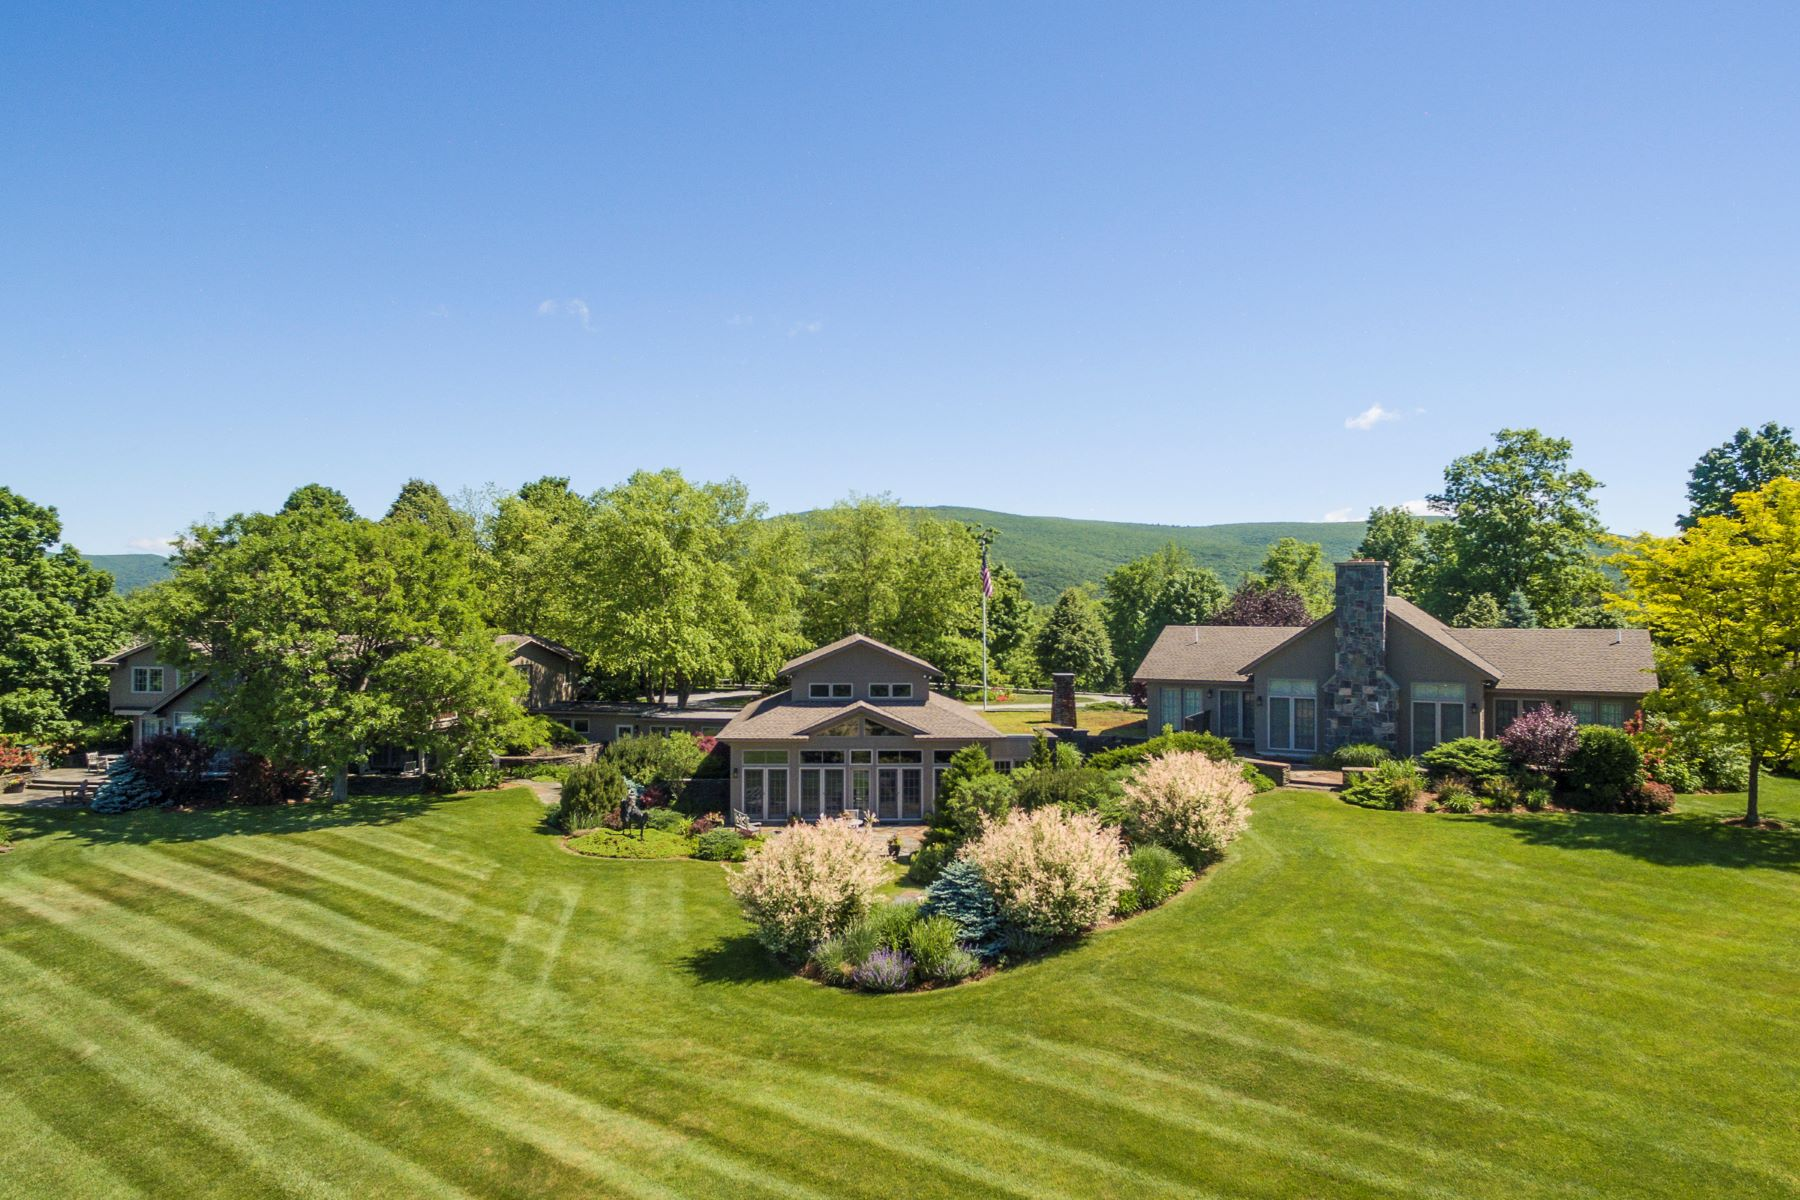 一戸建て のために 売買 アット Live your dream in this stunning 11.7 acre country estate with indoor pool and t 465 Stratton Rd Williamstown, マサチューセッツ, 01267 アメリカ合衆国